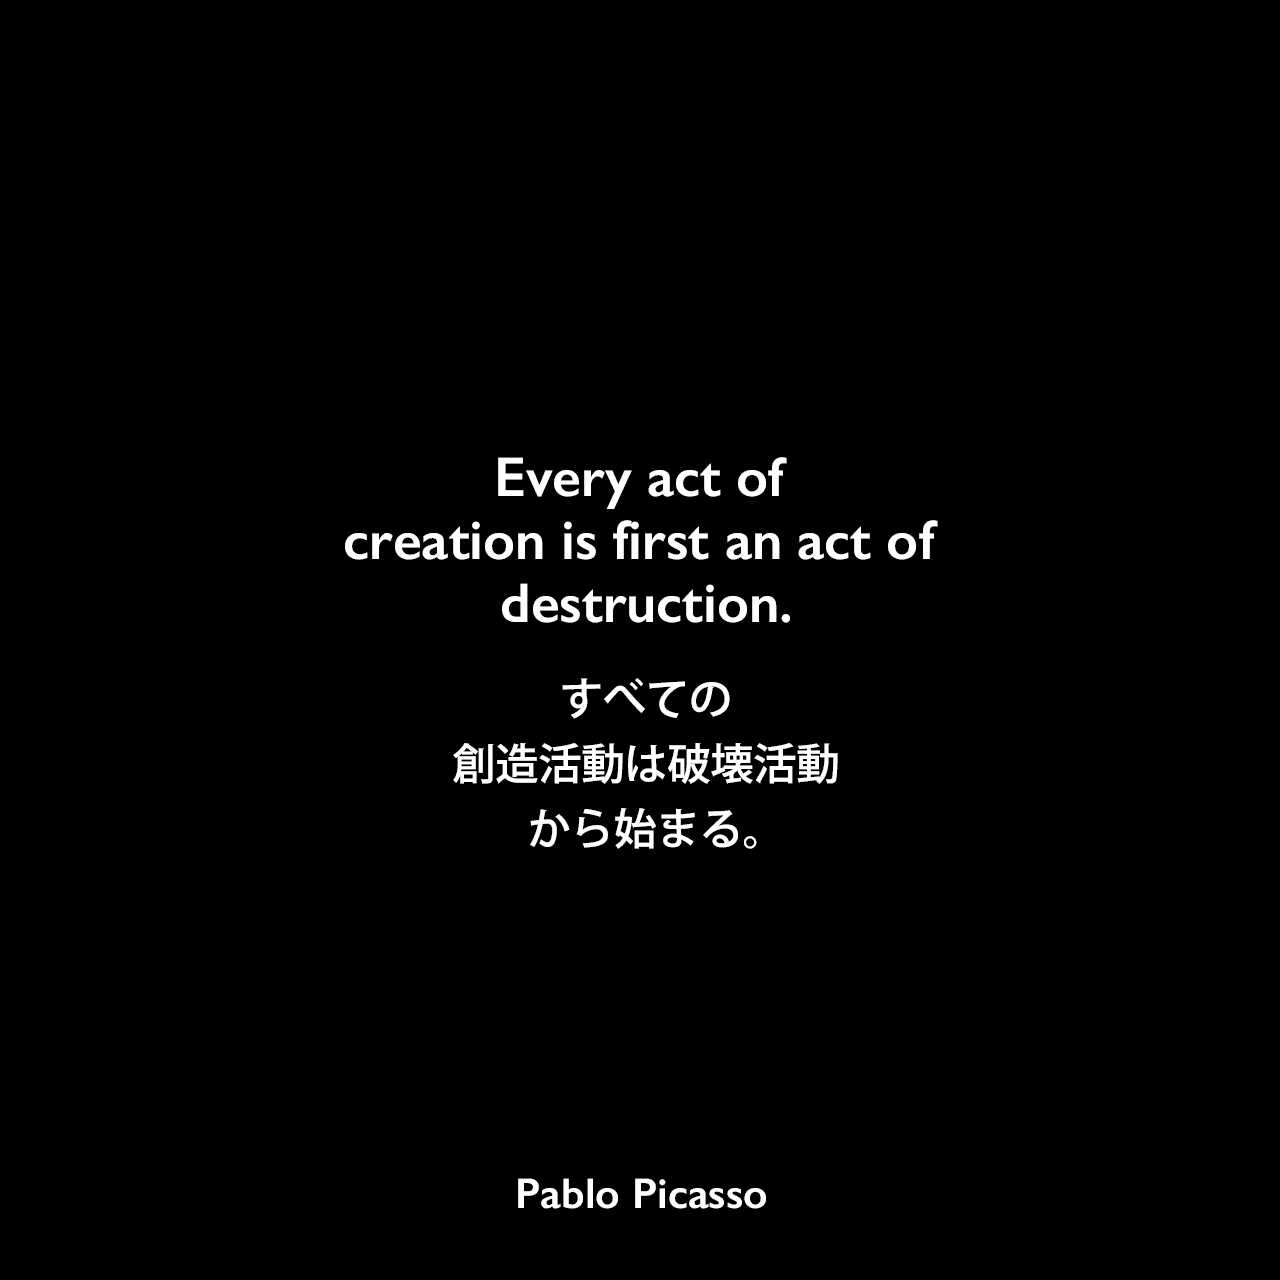 Every act of creation is first an act of destruction.すべての創造活動は、破壊活動から始まる。Pablo Picasso